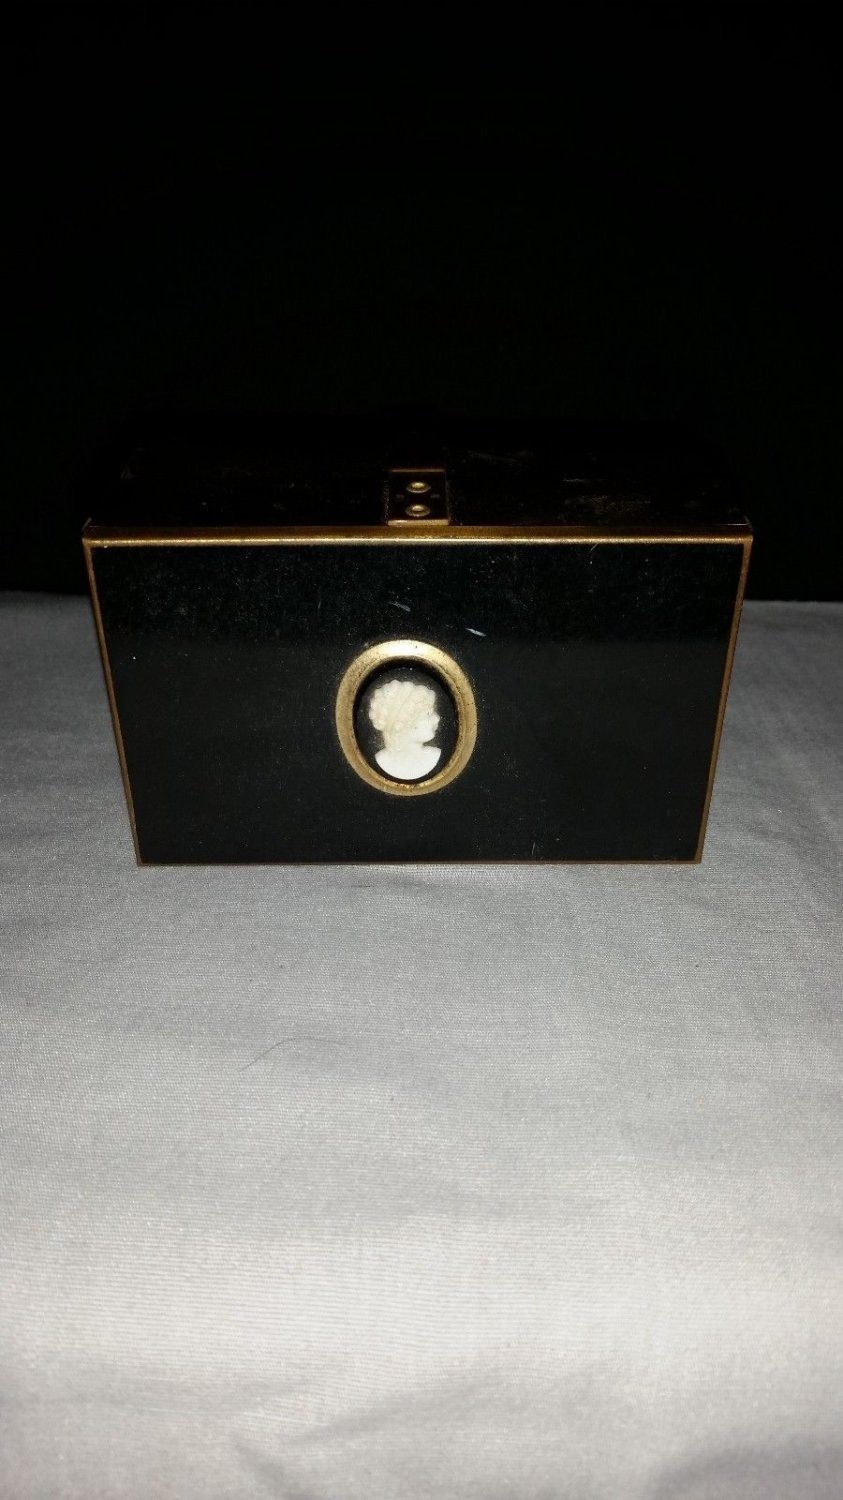 ANTIQUE VANITY 2 TIER EXPANDING GOLD TONE DRESSER JEWELRY BOX WITH CAMEO